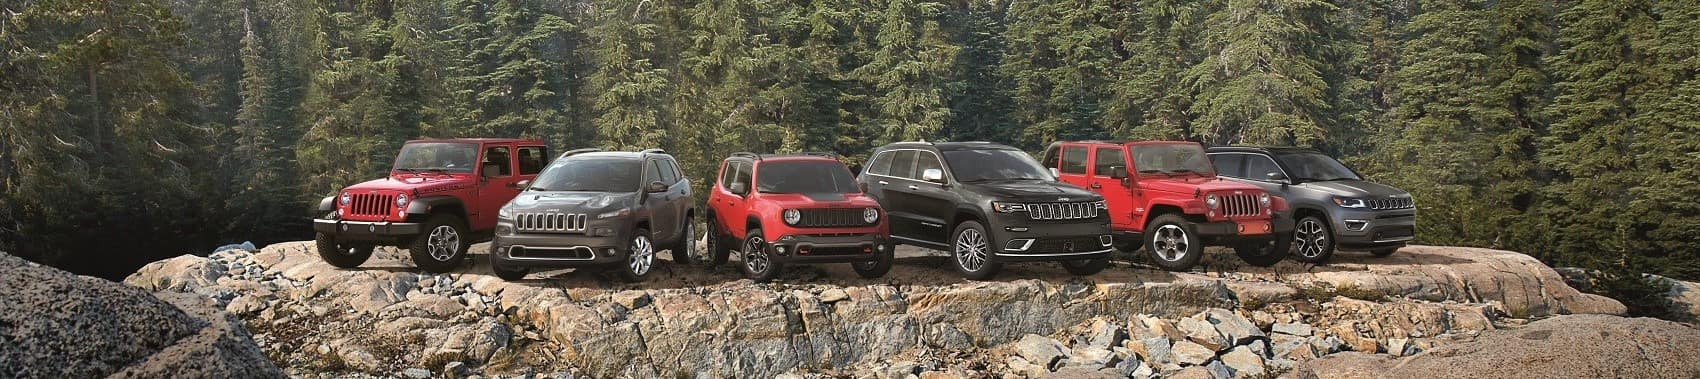 2017 Jeep Family Lineup banner